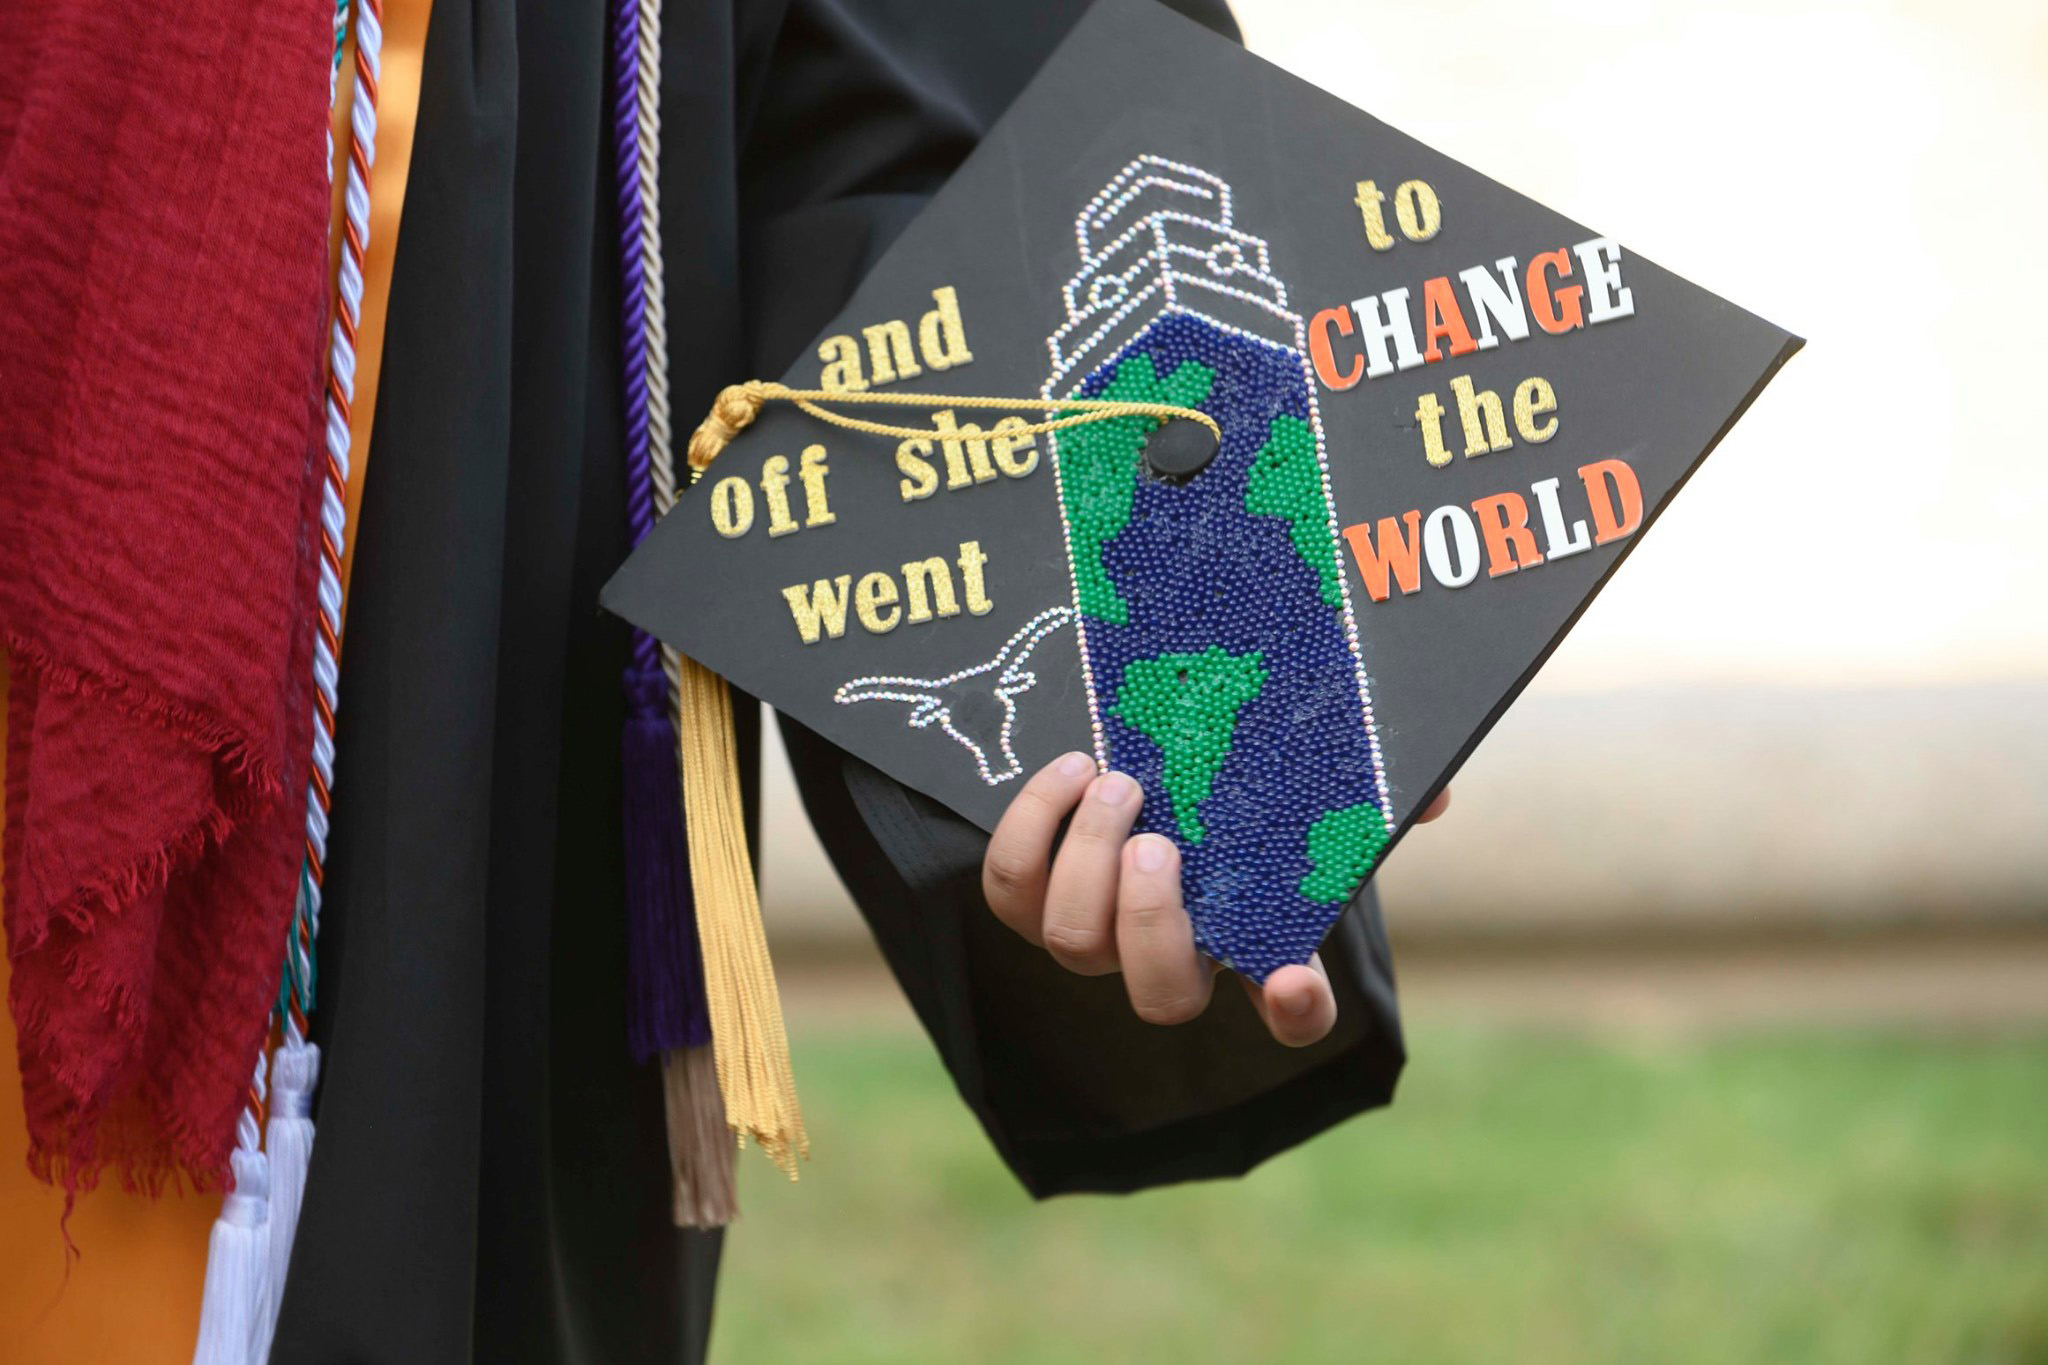 Graduation cap with lettering that says